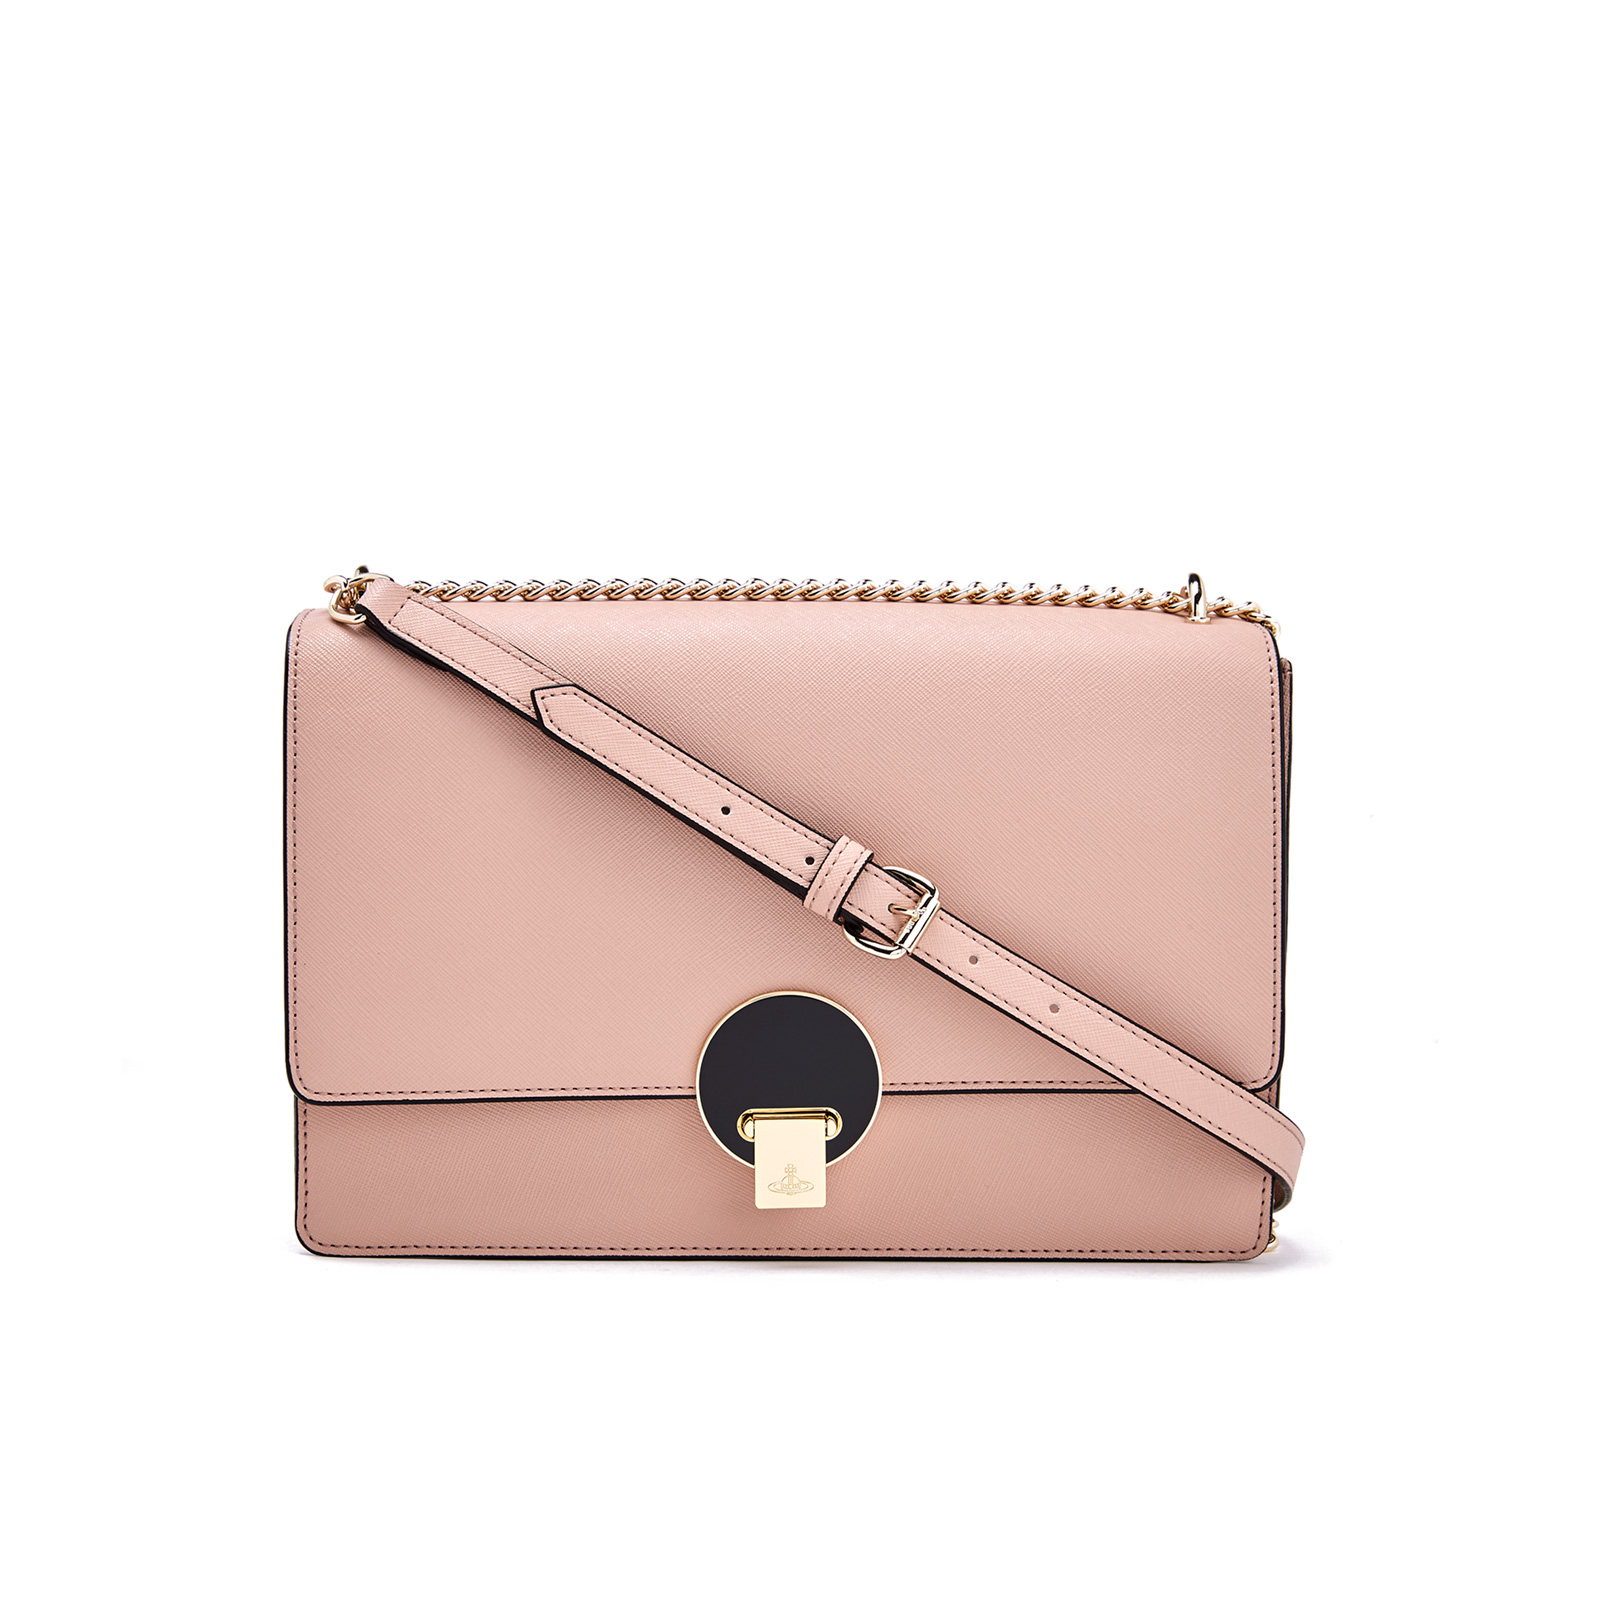 959eef9ab119 Vivienne Westwood Women s Opio Saffiano Leather Large Fold Over Shoulder Bag  - Pink - Free UK Delivery over £50